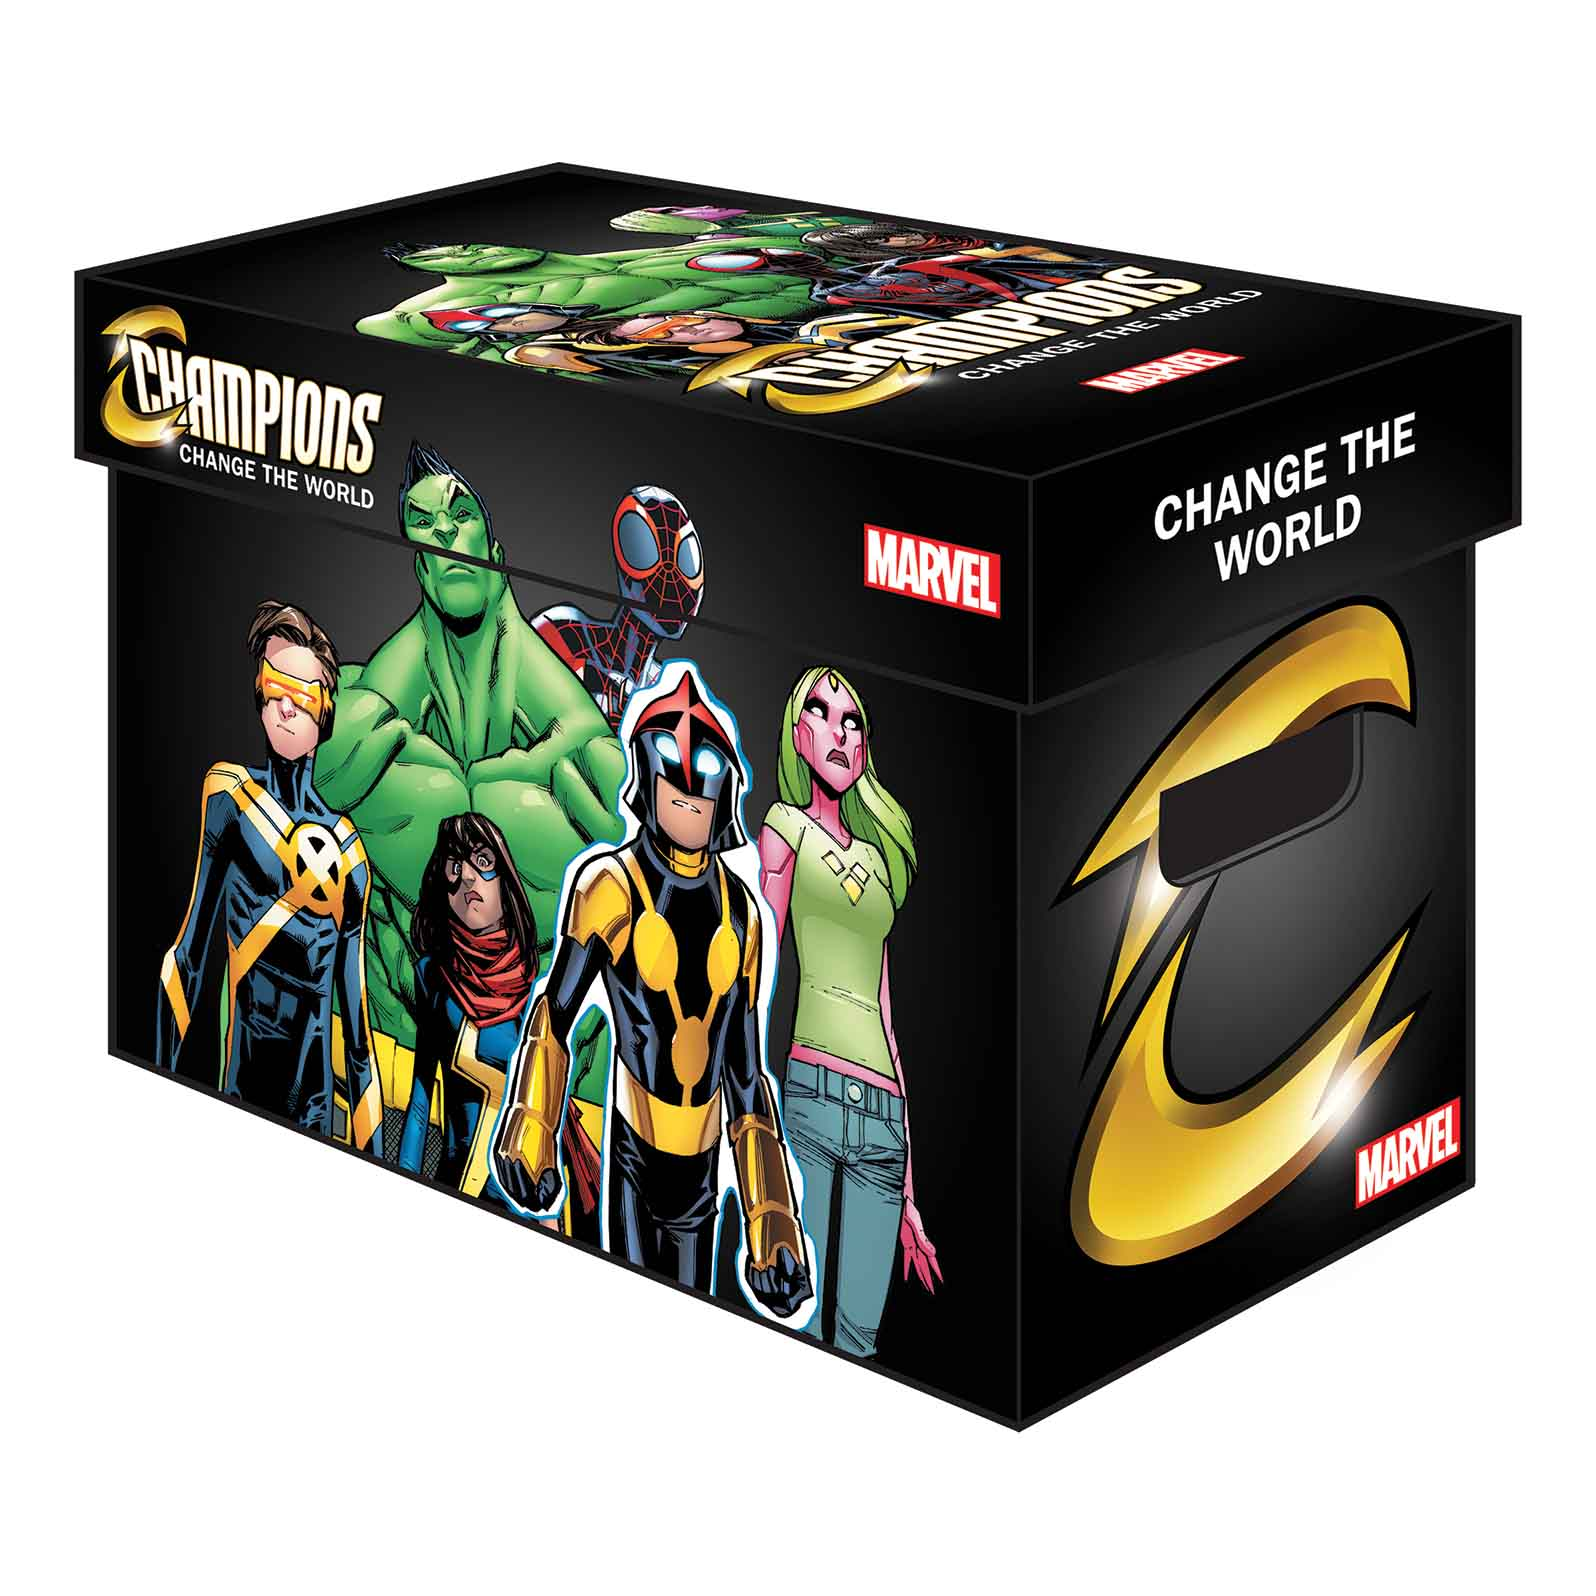 Marvel Prints Up Some Cool New Comic Boxes